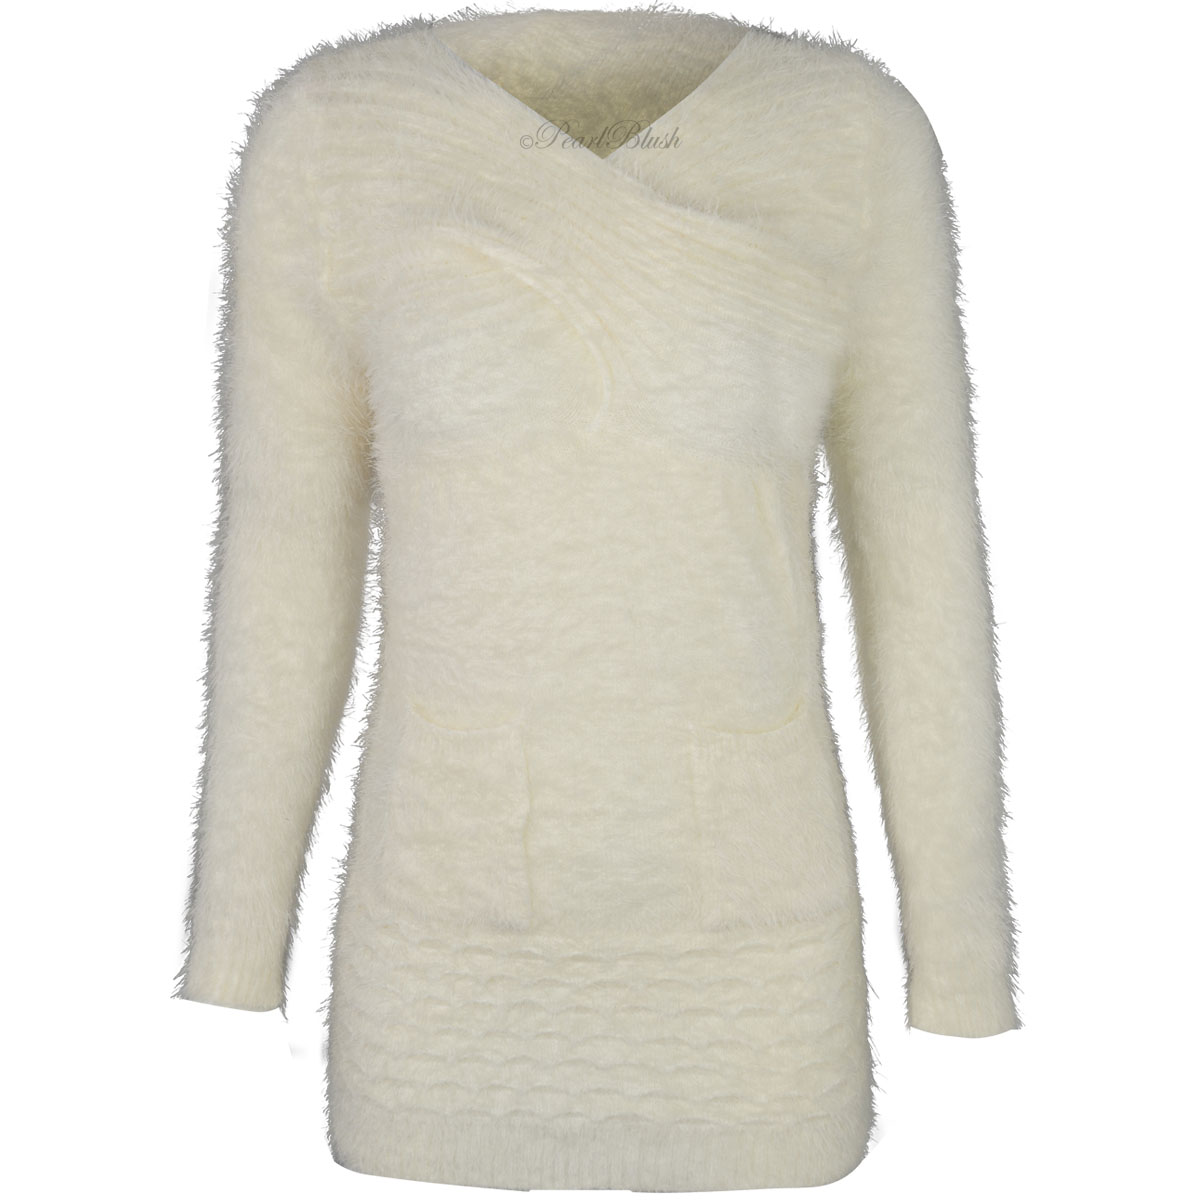 This sweater is a shameless flatterer: its slouchy body is loose and comfortable - a perfect fit for any build - and the generous V-neck compliments every face shape. Wear it .